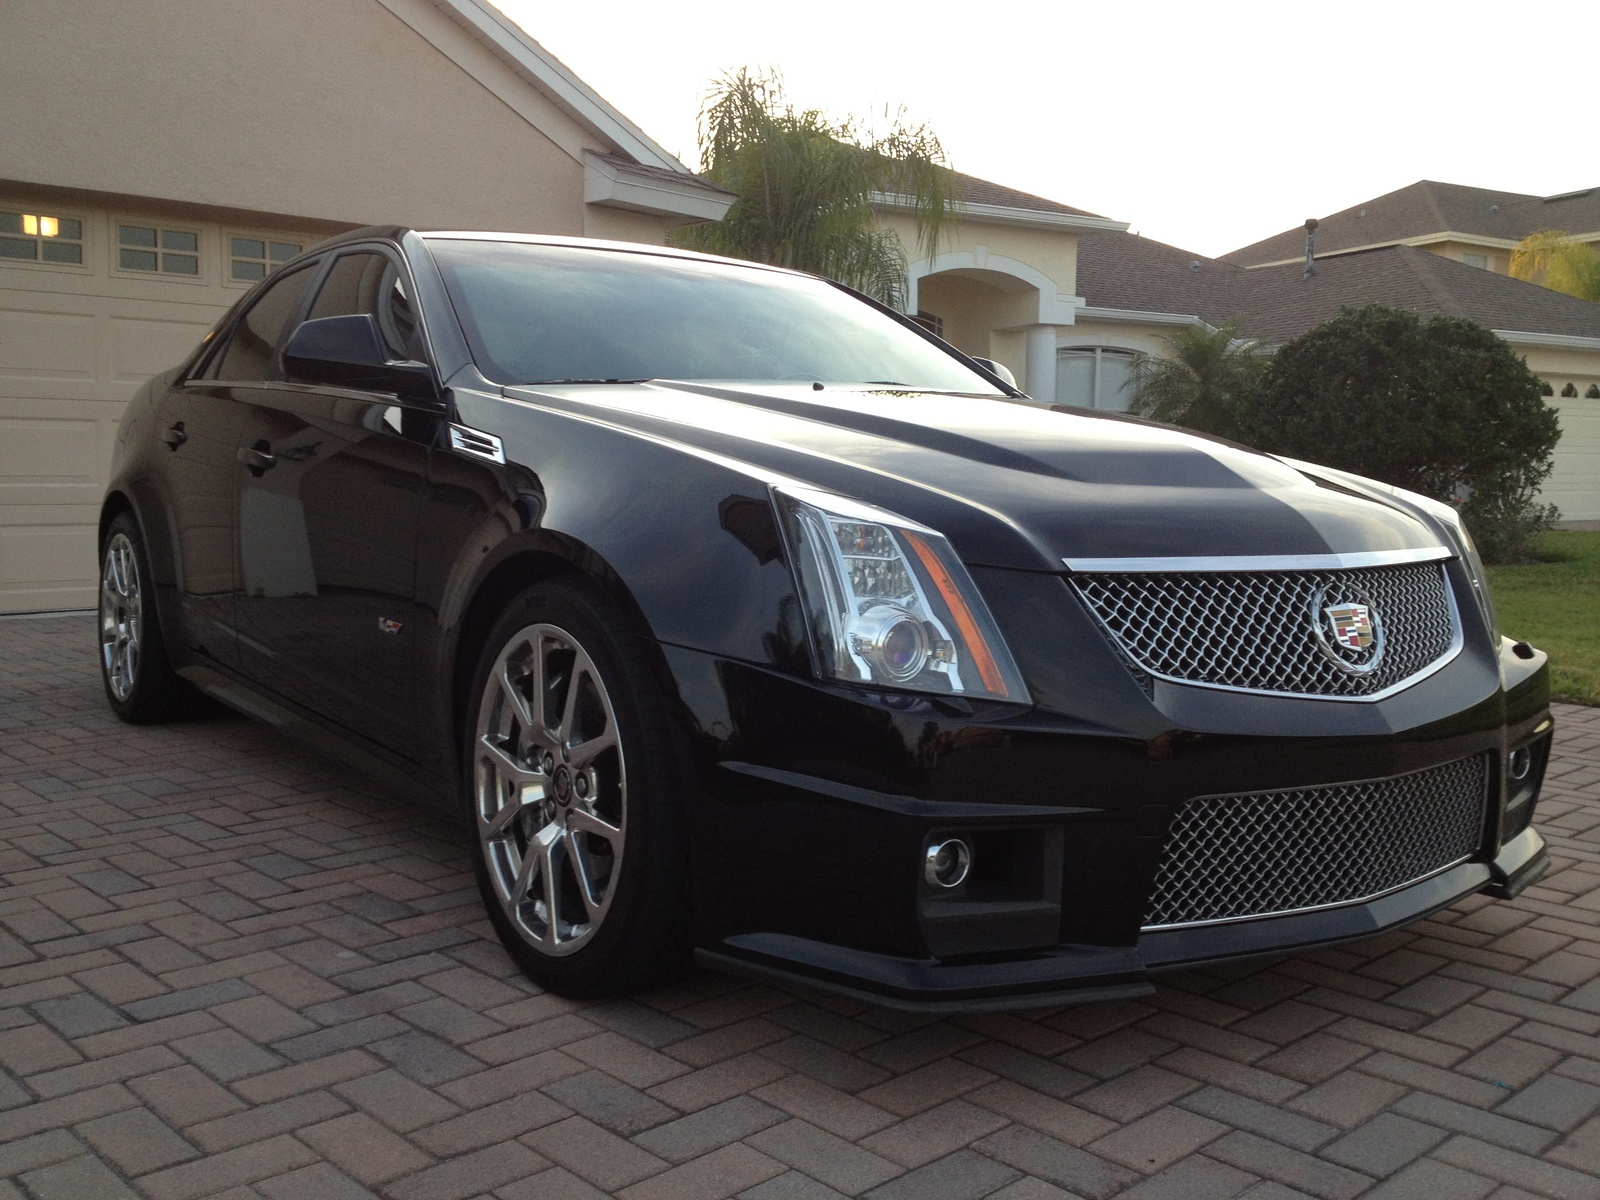 2010 cadillac cts v pictures cargurus. Black Bedroom Furniture Sets. Home Design Ideas